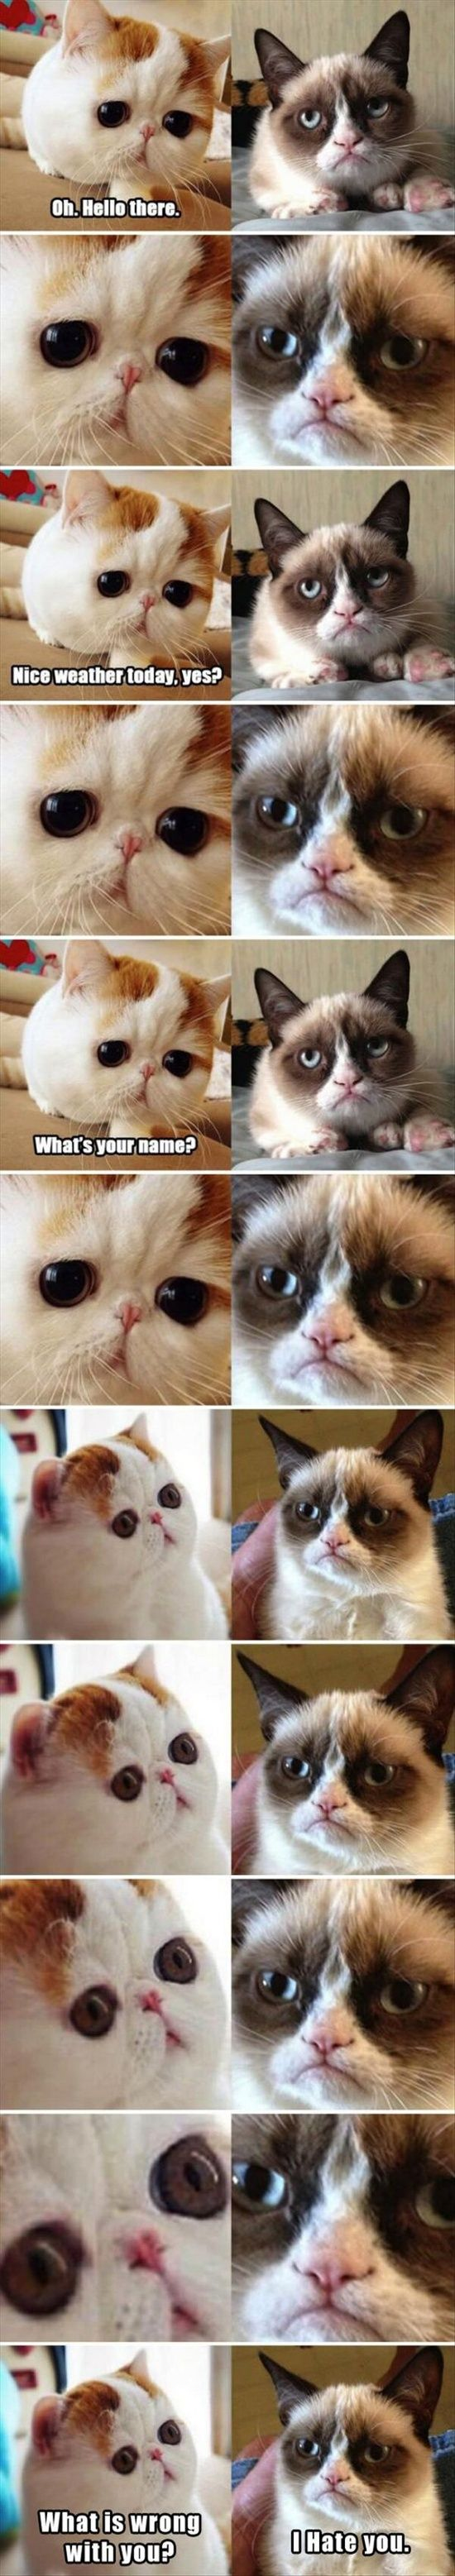 grumpy cat ain't got time for that